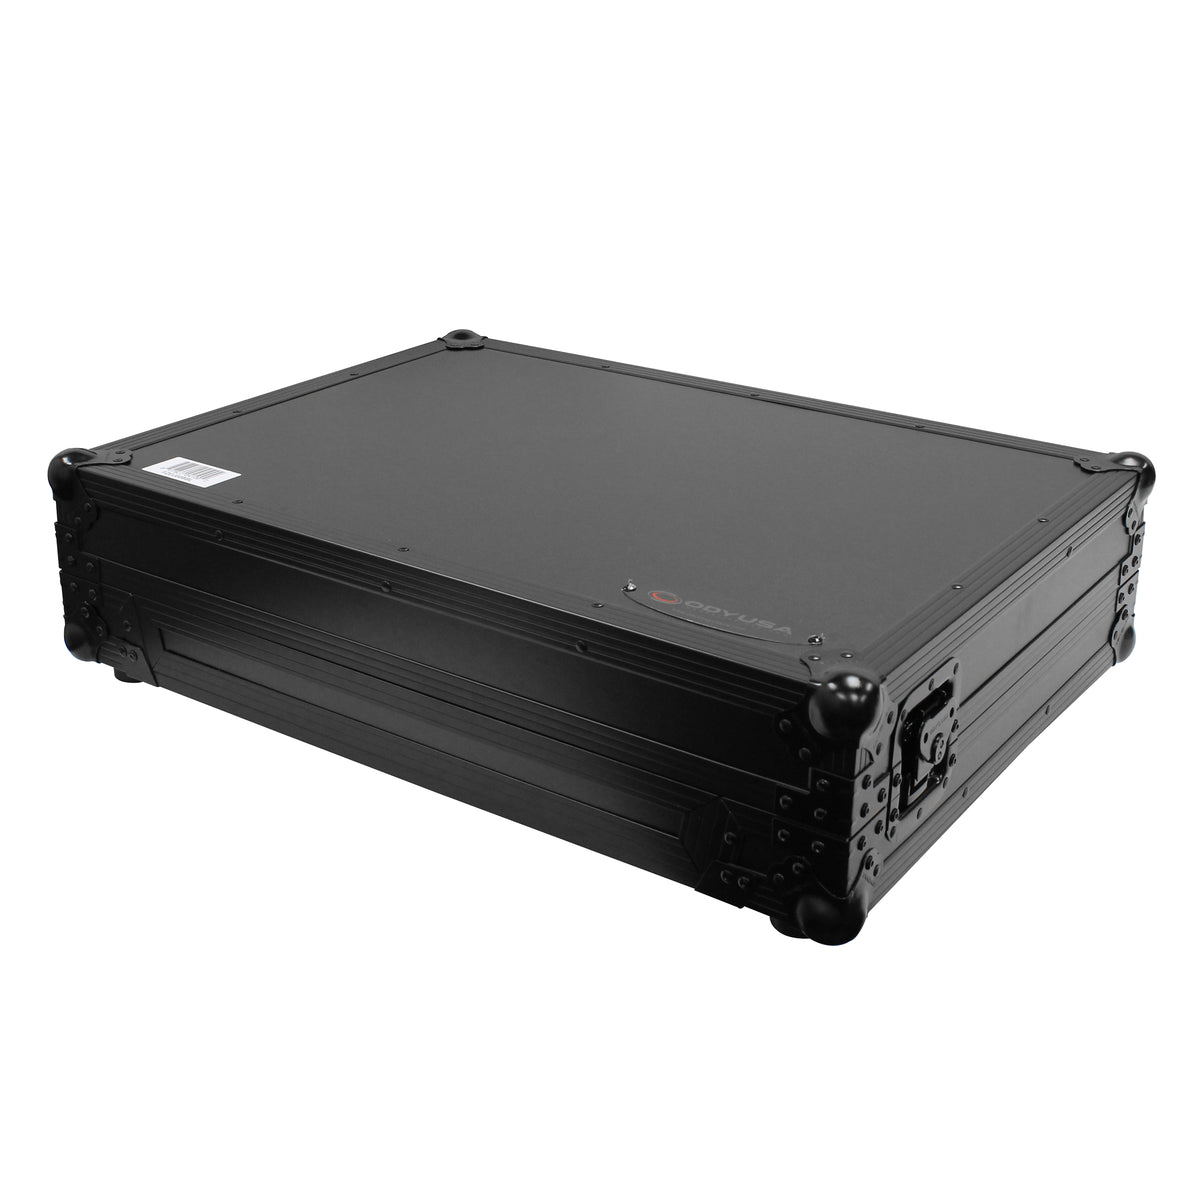 Odyssey: Black Label Flight Zone Case for Roland DJ-808 / Denon MC7000 (FZDJ808BL)